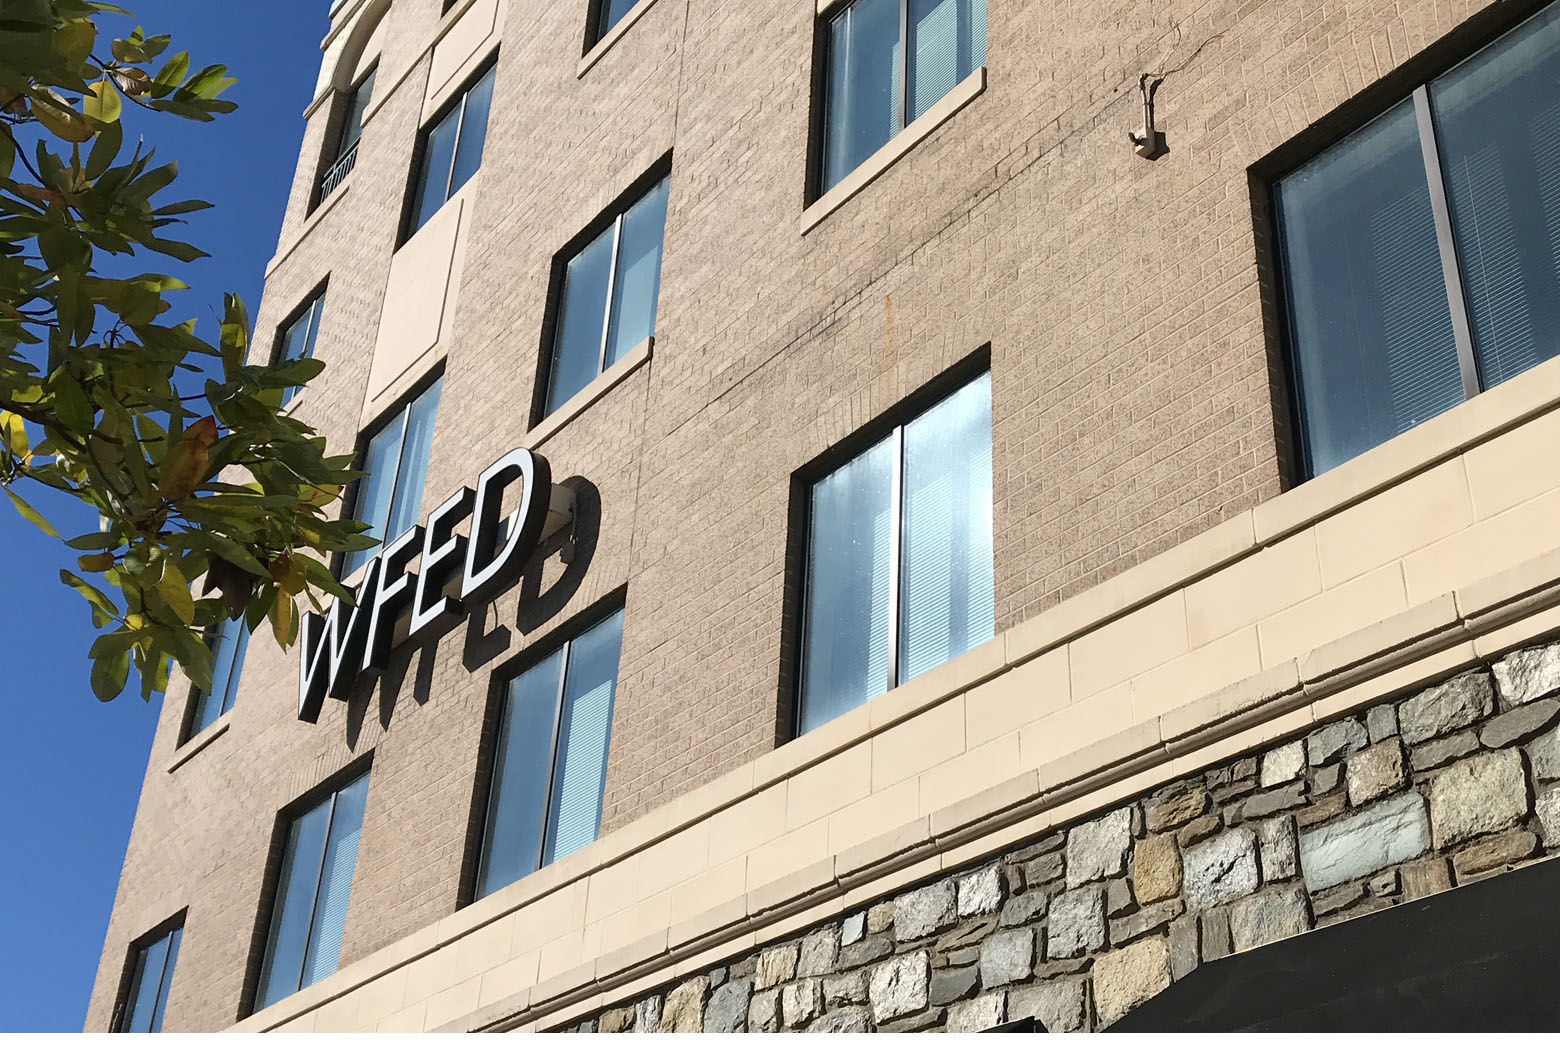 WTOP's current building after the removal of the station's call letters November 16, 2018. WTOP is moving its headquarters to Chevy Chase, Maryland, early next year. (WTOP/Ginger Whitaker)